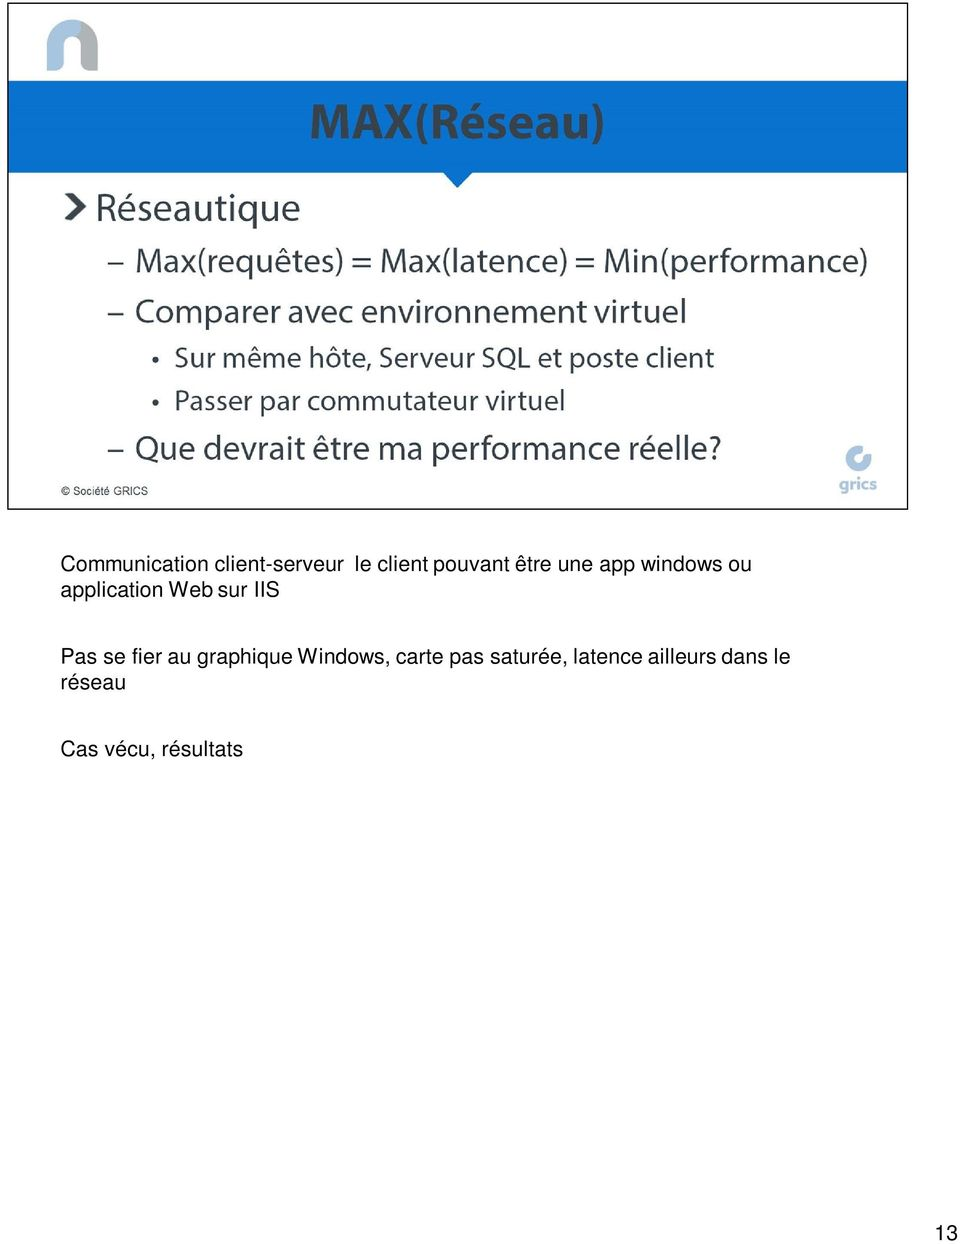 Pas se fier au graphique Windows, carte pas